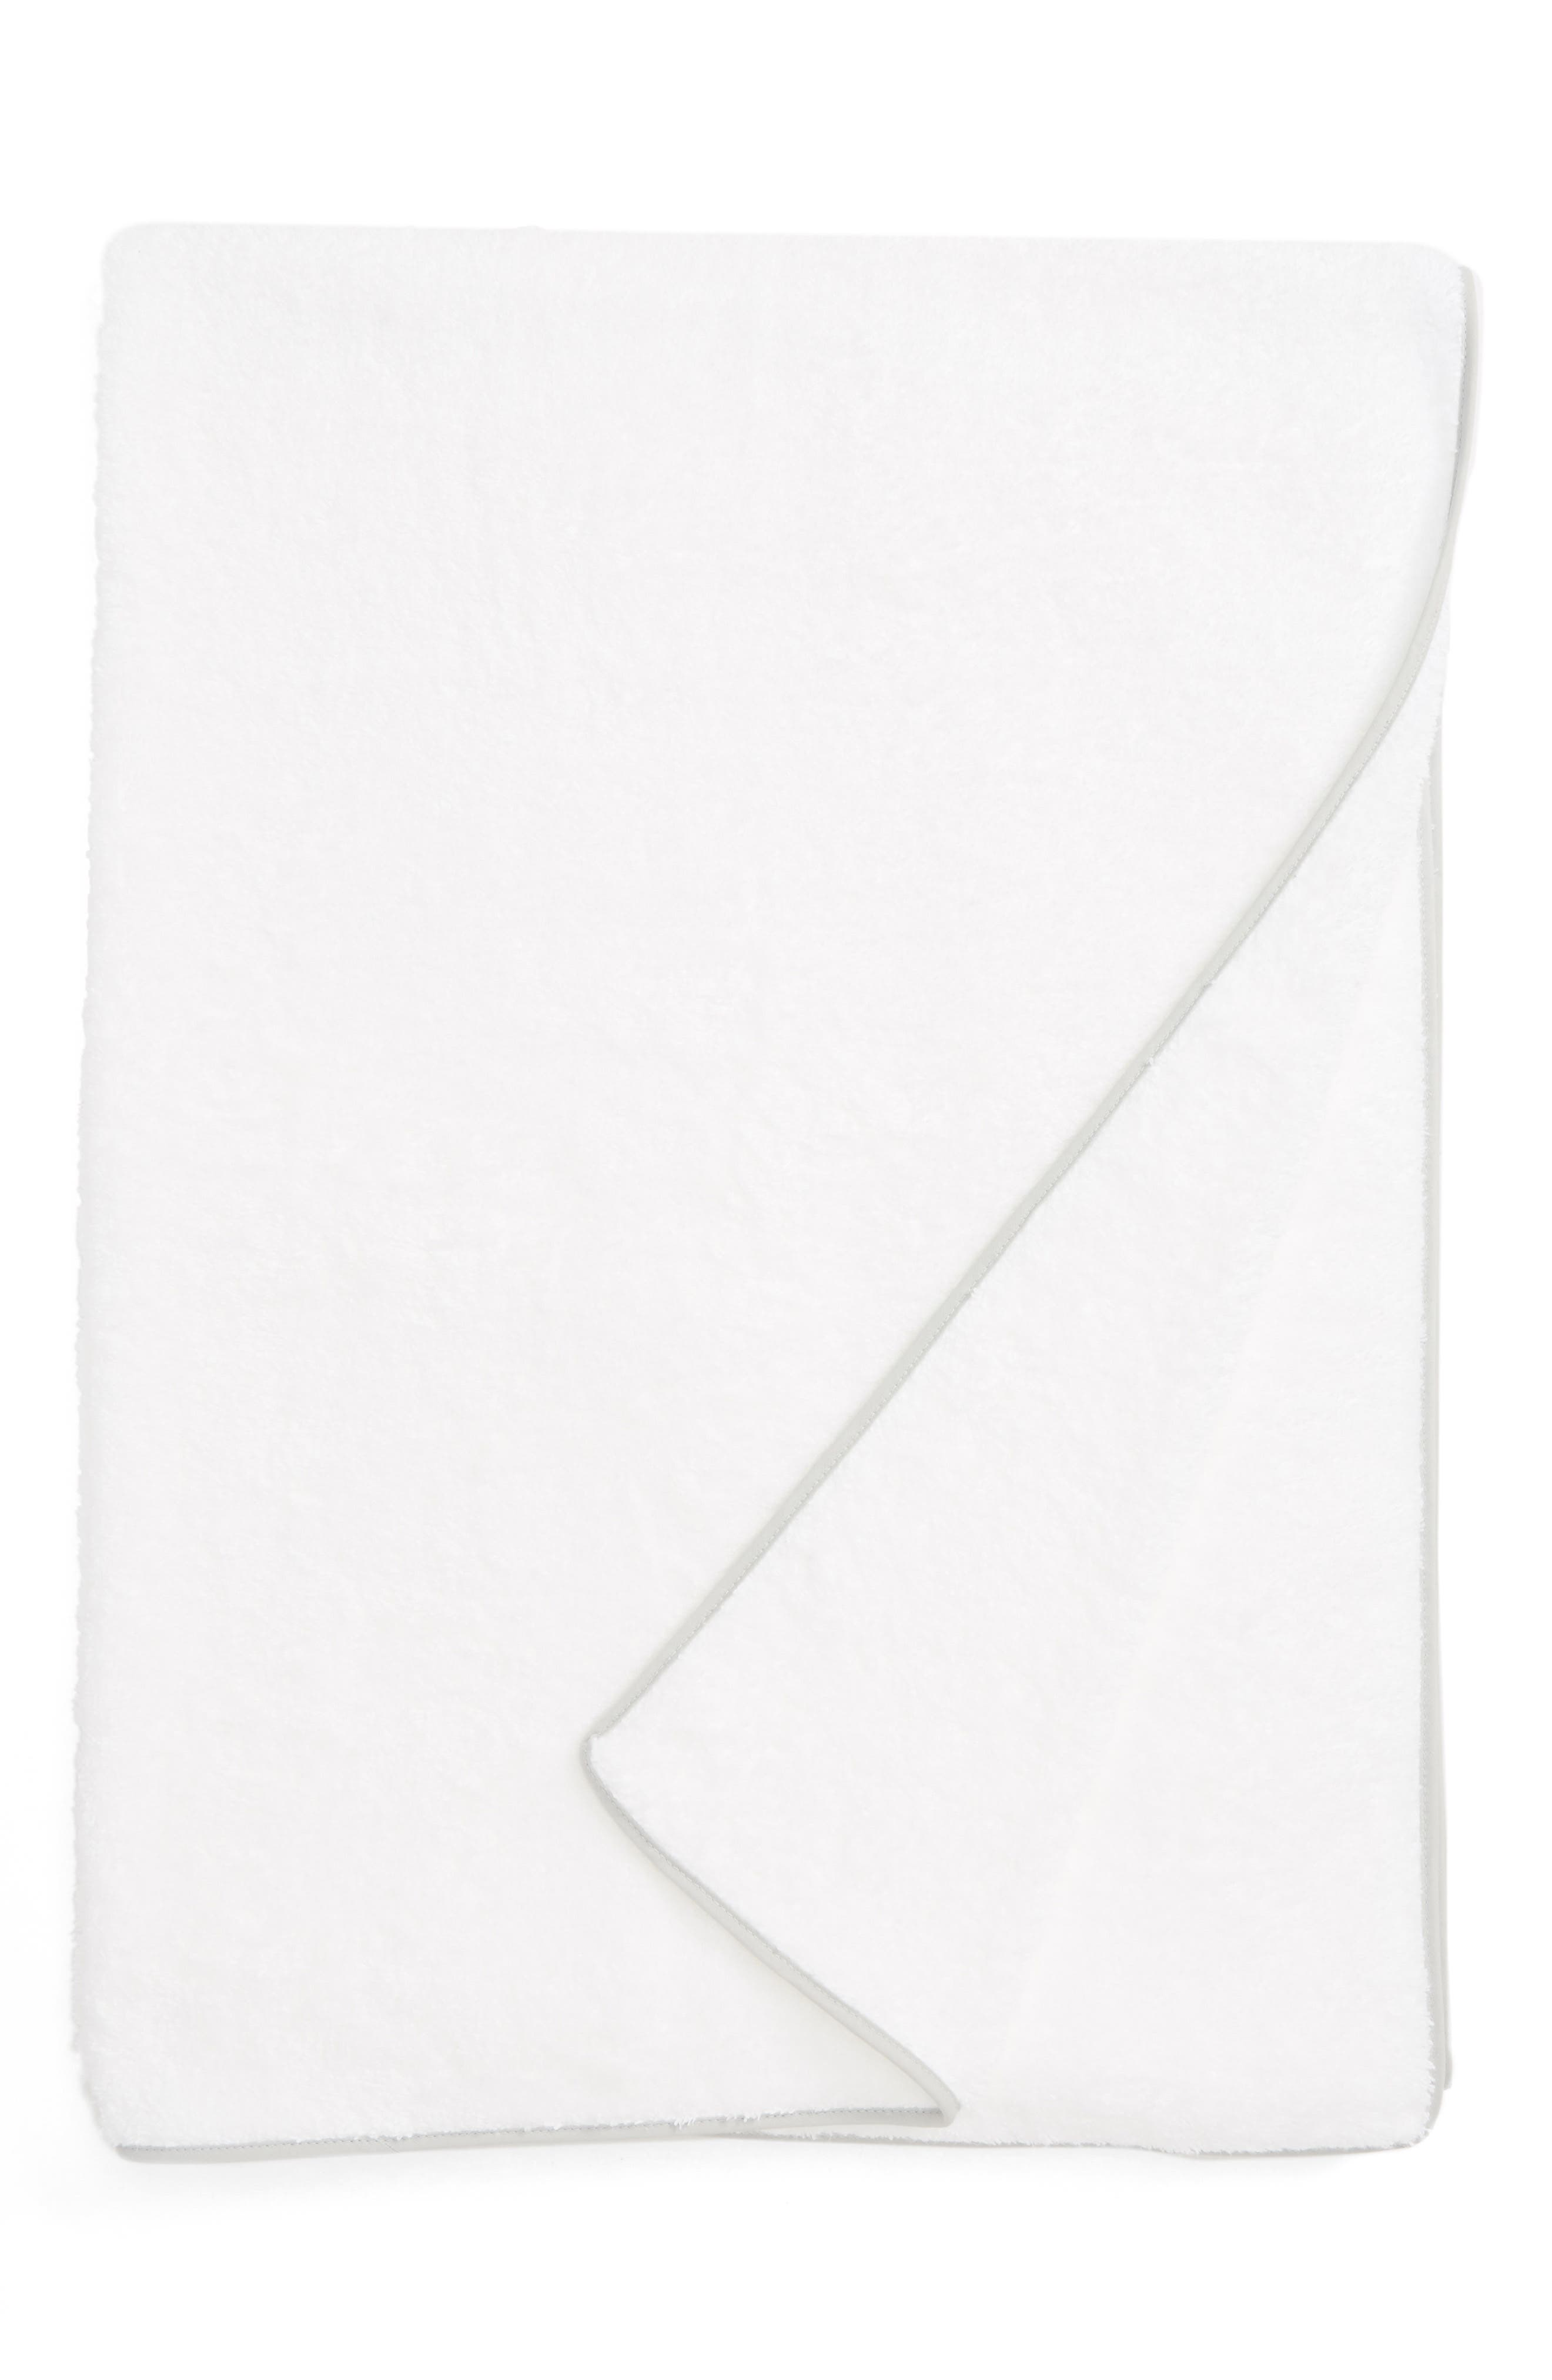 Cairo Bath Sheet,                         Main,                         color, 040